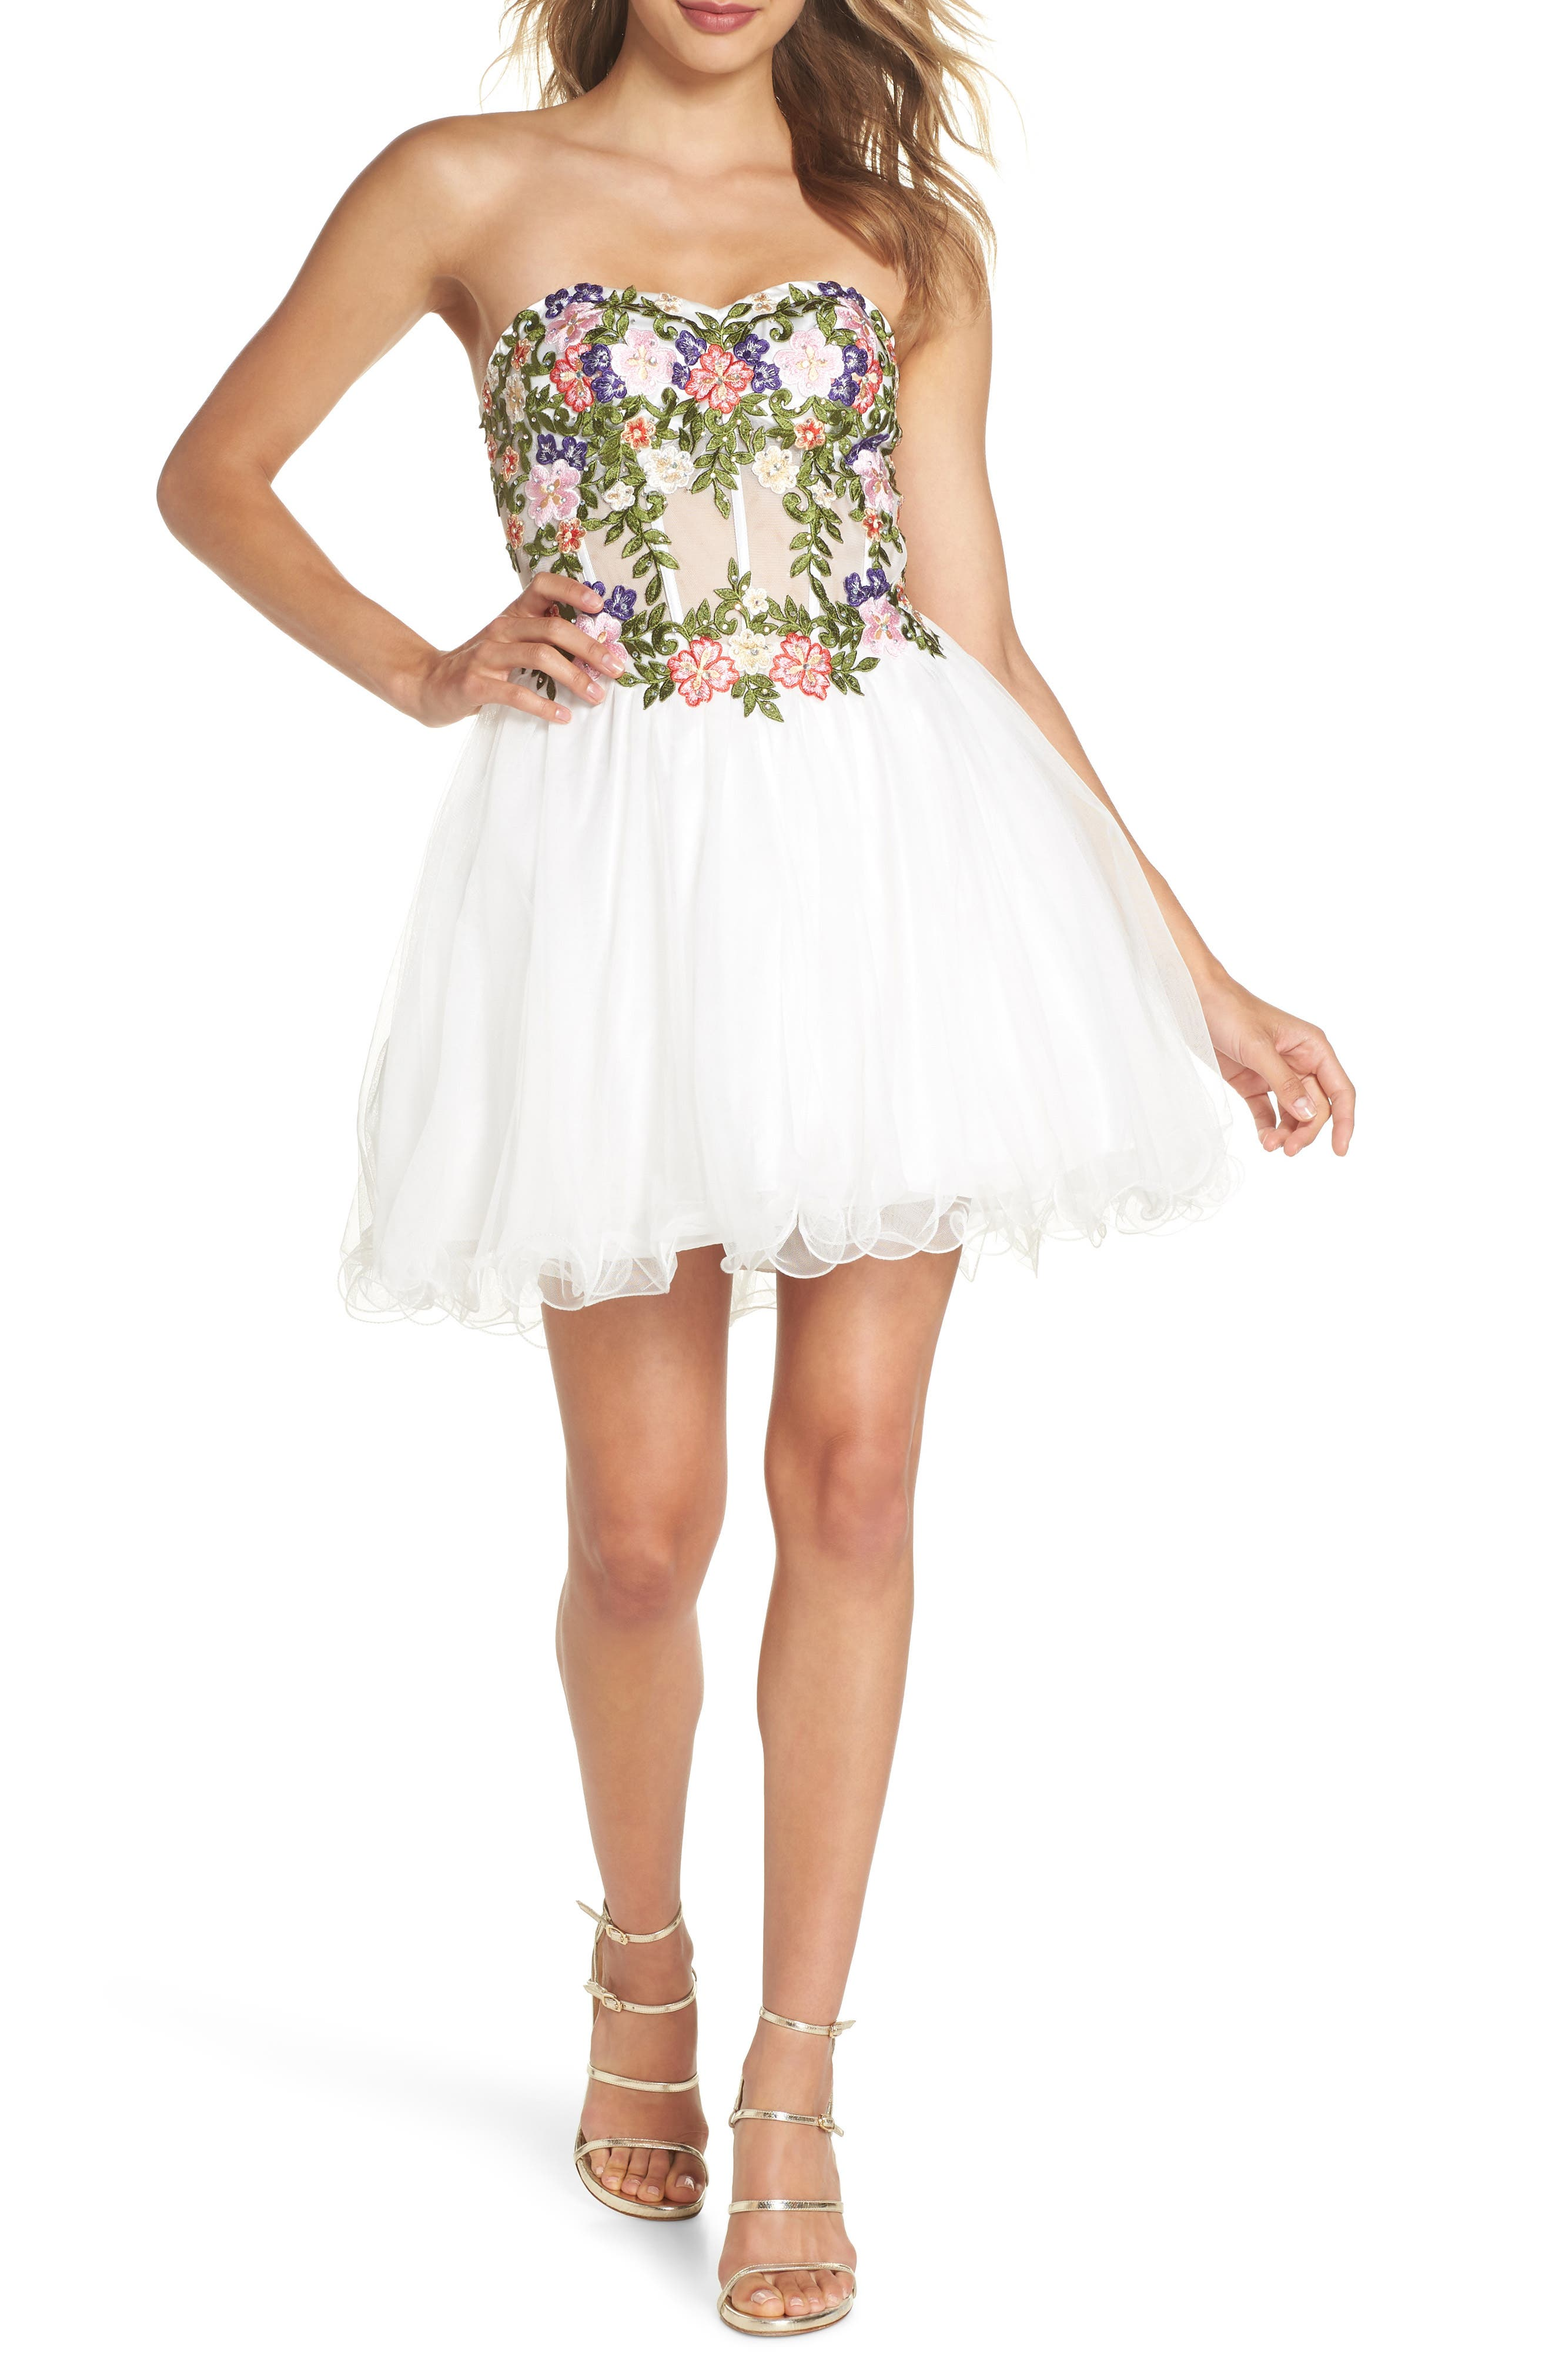 Blondie Nites Embroidered Lace Fit & Flare Dress, Ivory